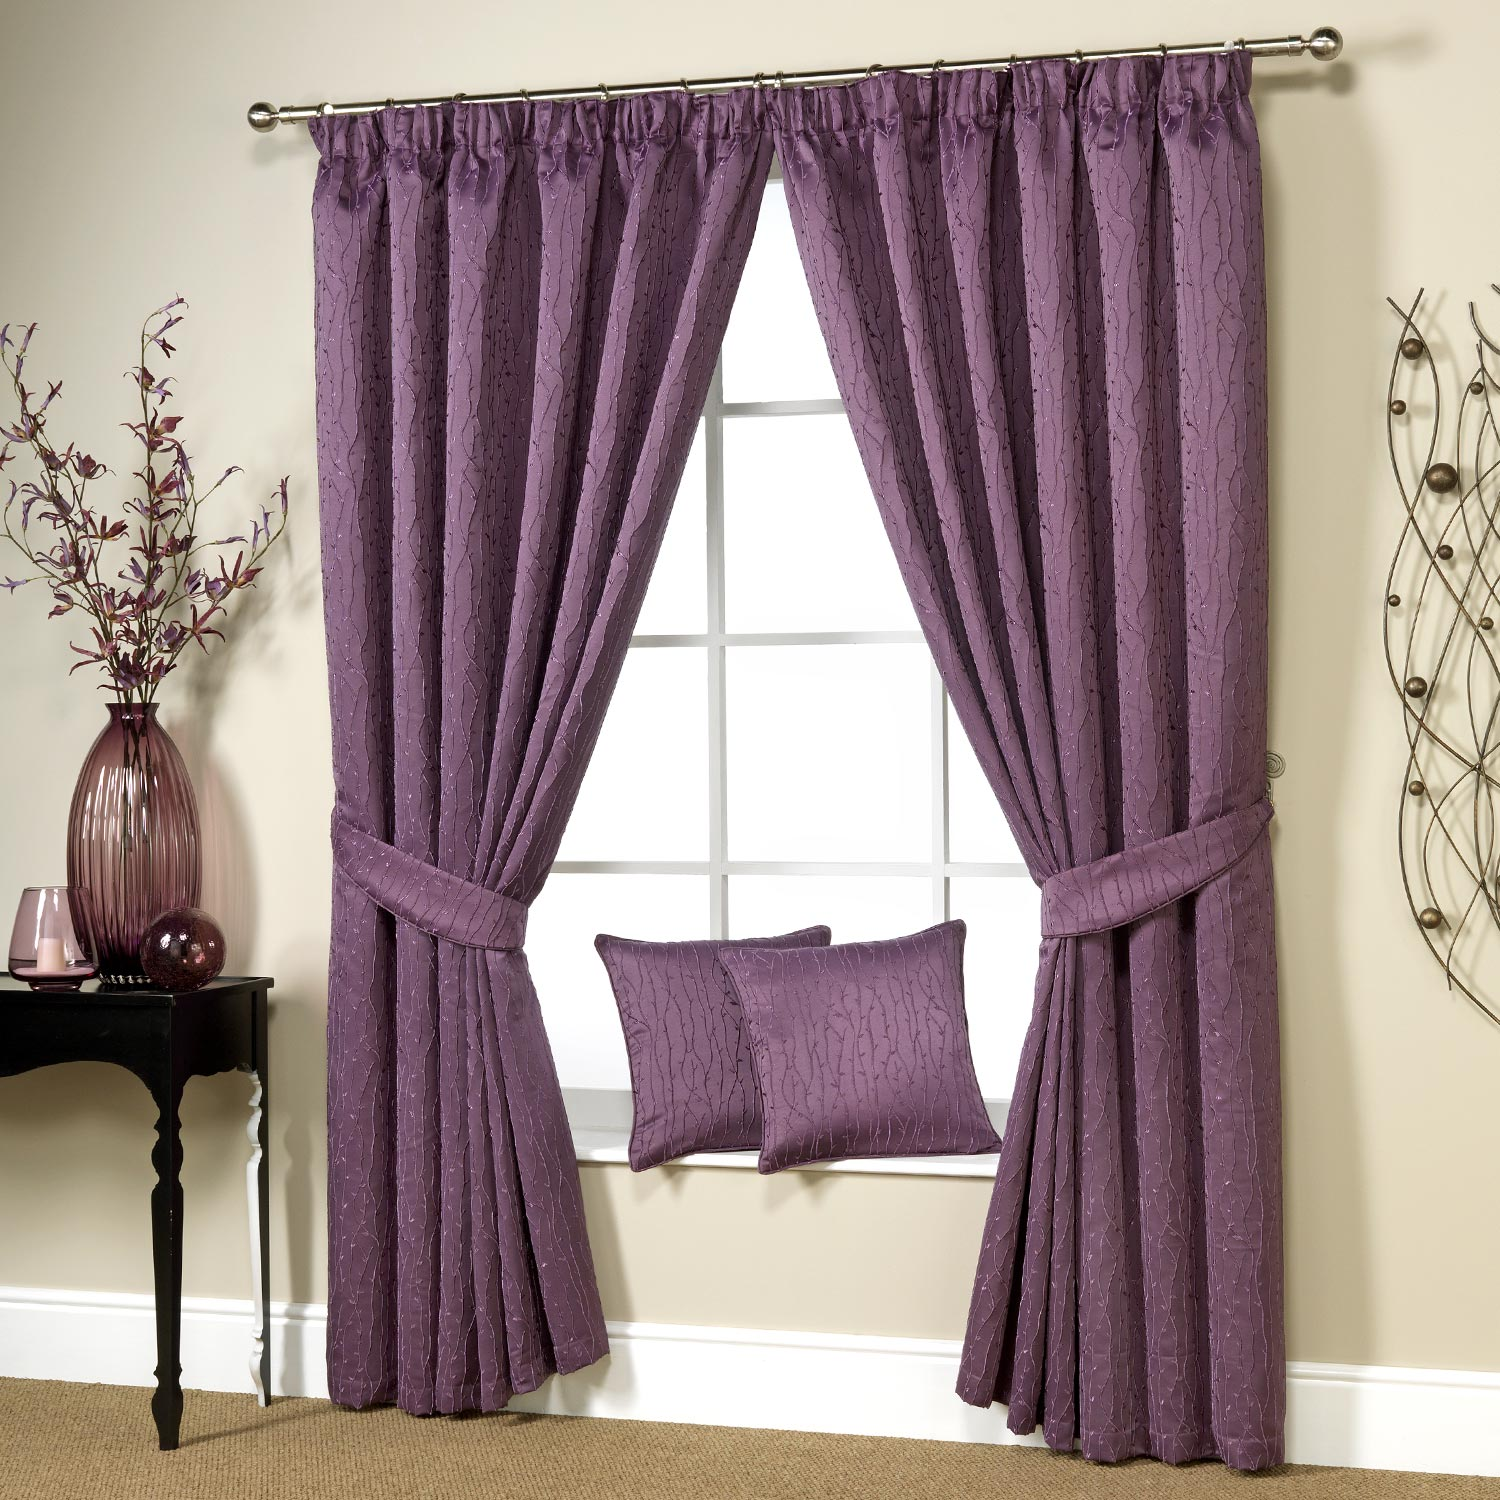 Light Green Curtains In The Box Peach Purple Safety Curtain